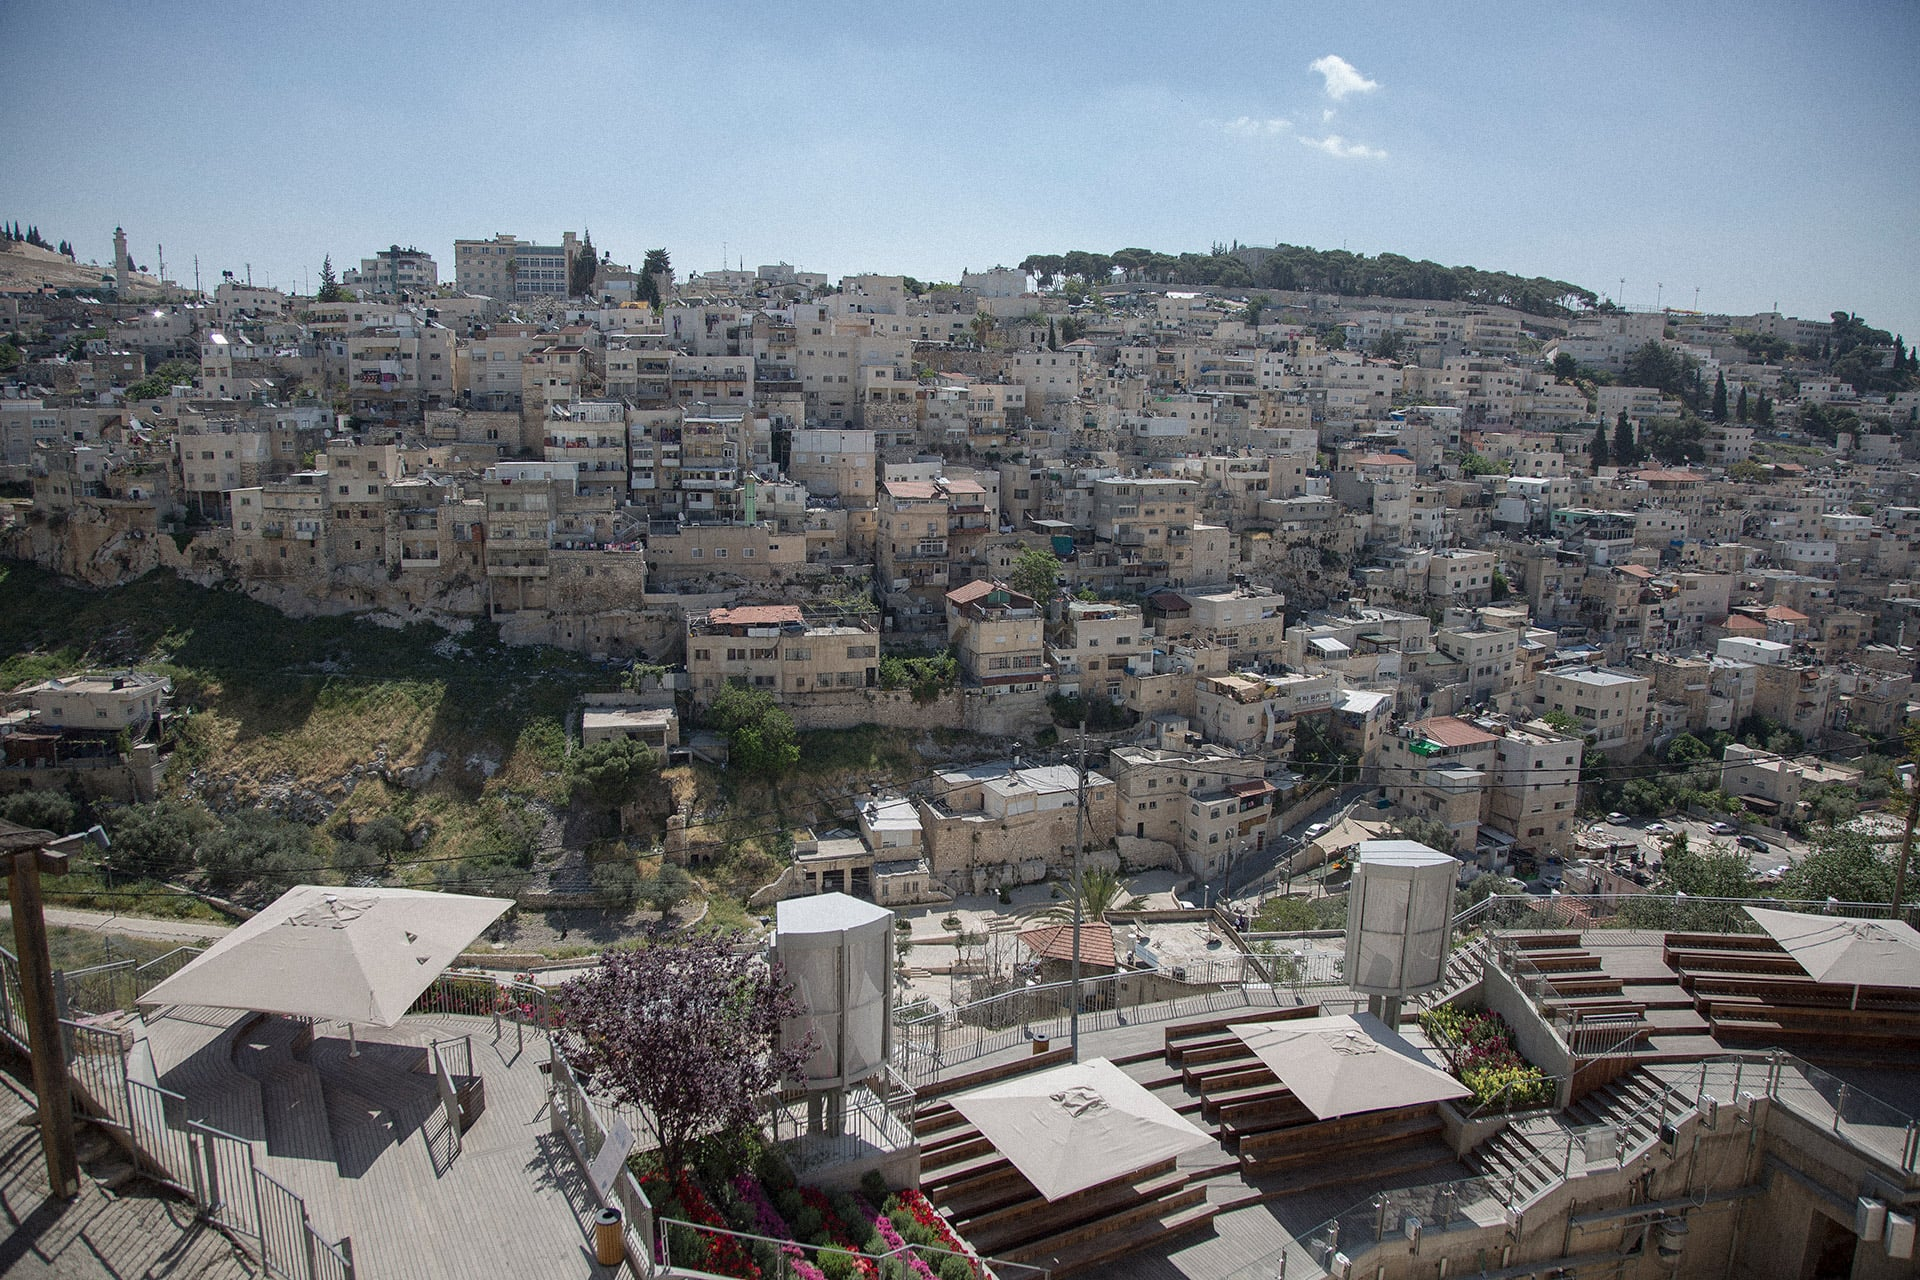 East Jerusalem's Silwan neighborhood sits south of the Old City. (Photo: Faiz Abu Rmeleh)